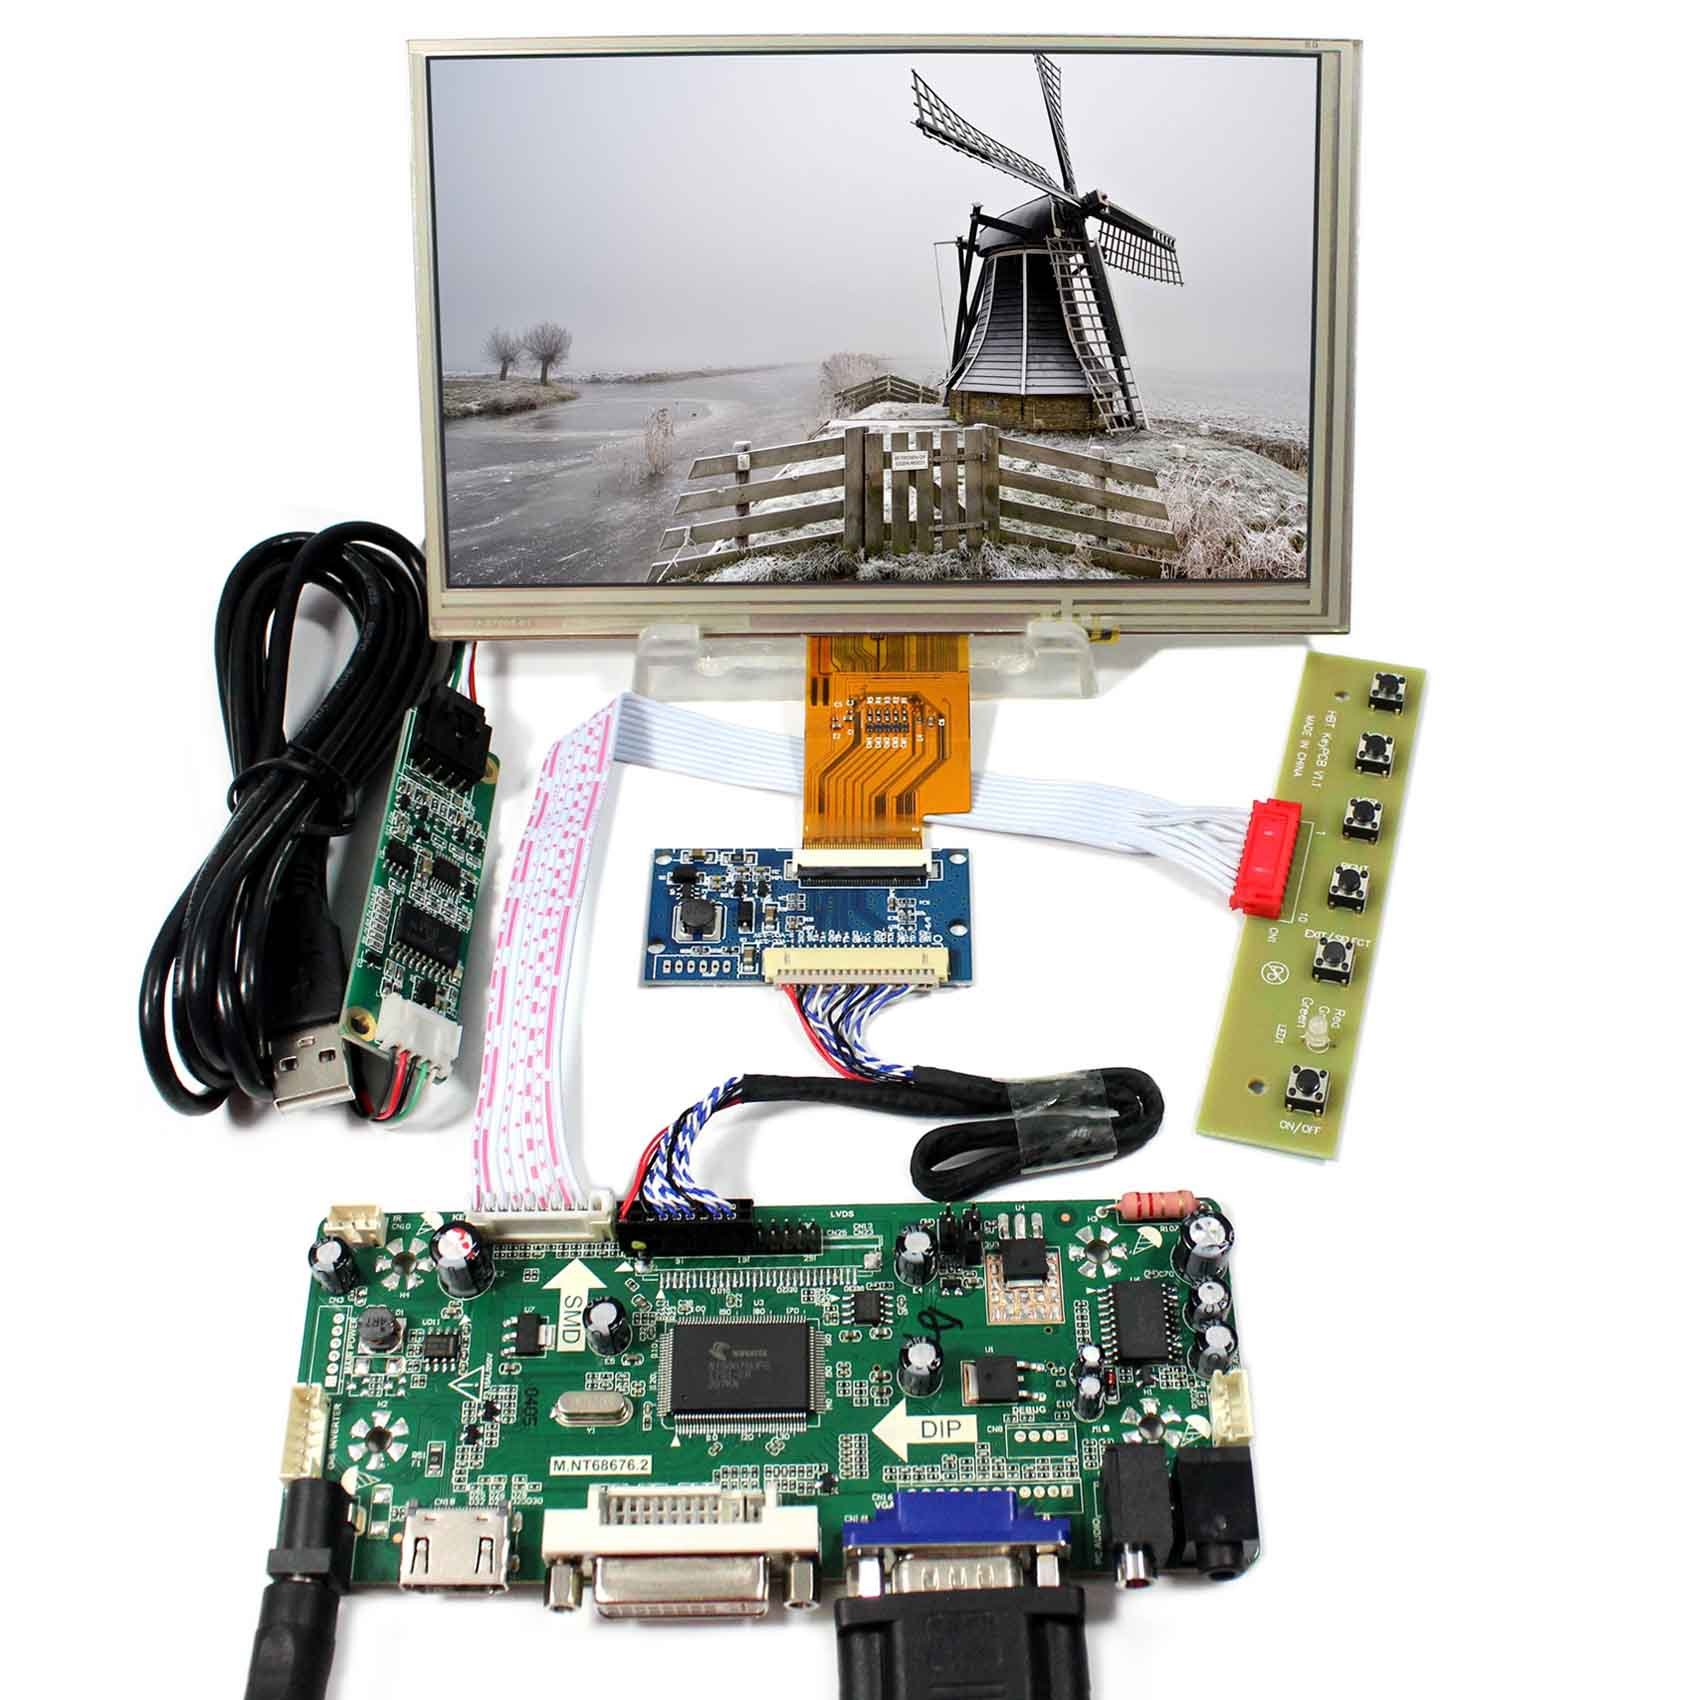 LCD Controller Board 7inch LCD Screen AT070TNA2  1024X600 TP HDMI DVI VGA LCD Controller BoardLCD Controller Board 7inch LCD Screen AT070TNA2  1024X600 TP HDMI DVI VGA LCD Controller Board